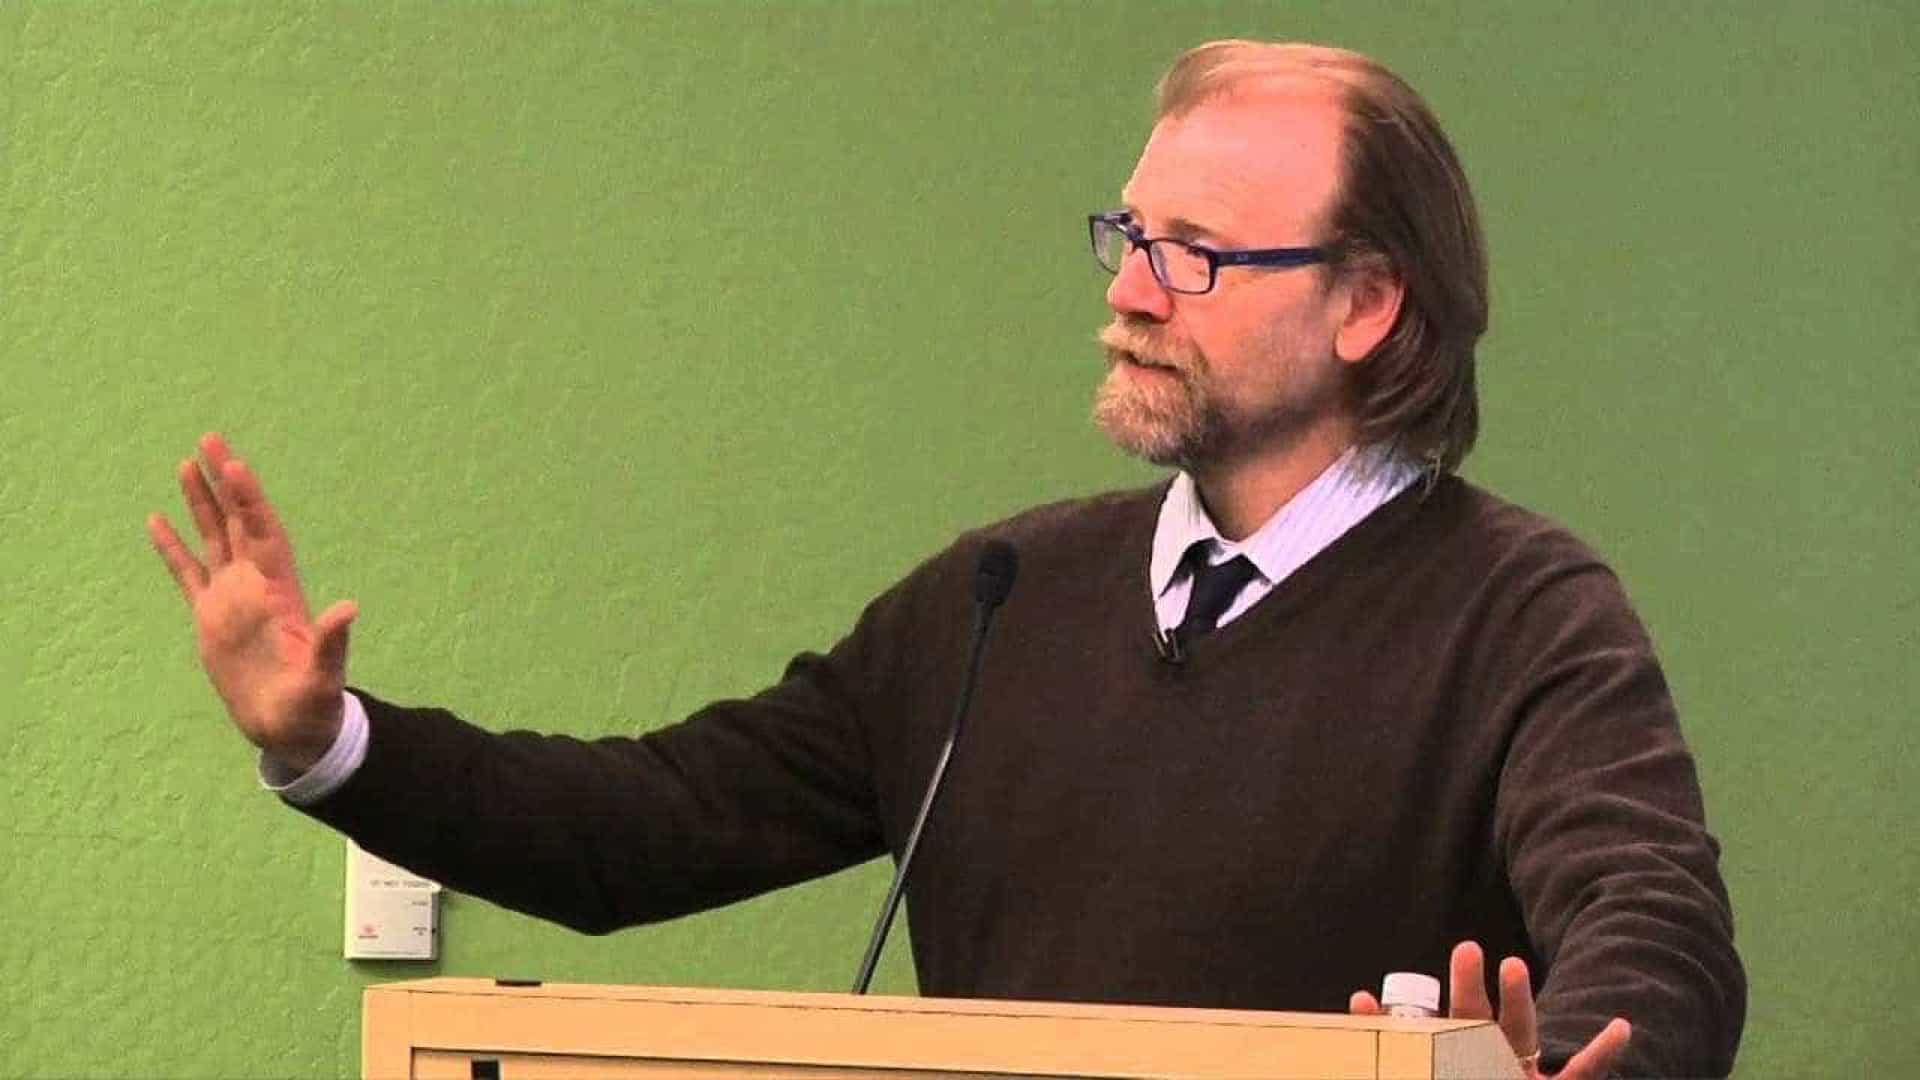 George Saunders ganha Man Booker por 'Lincoln in the Bardo'